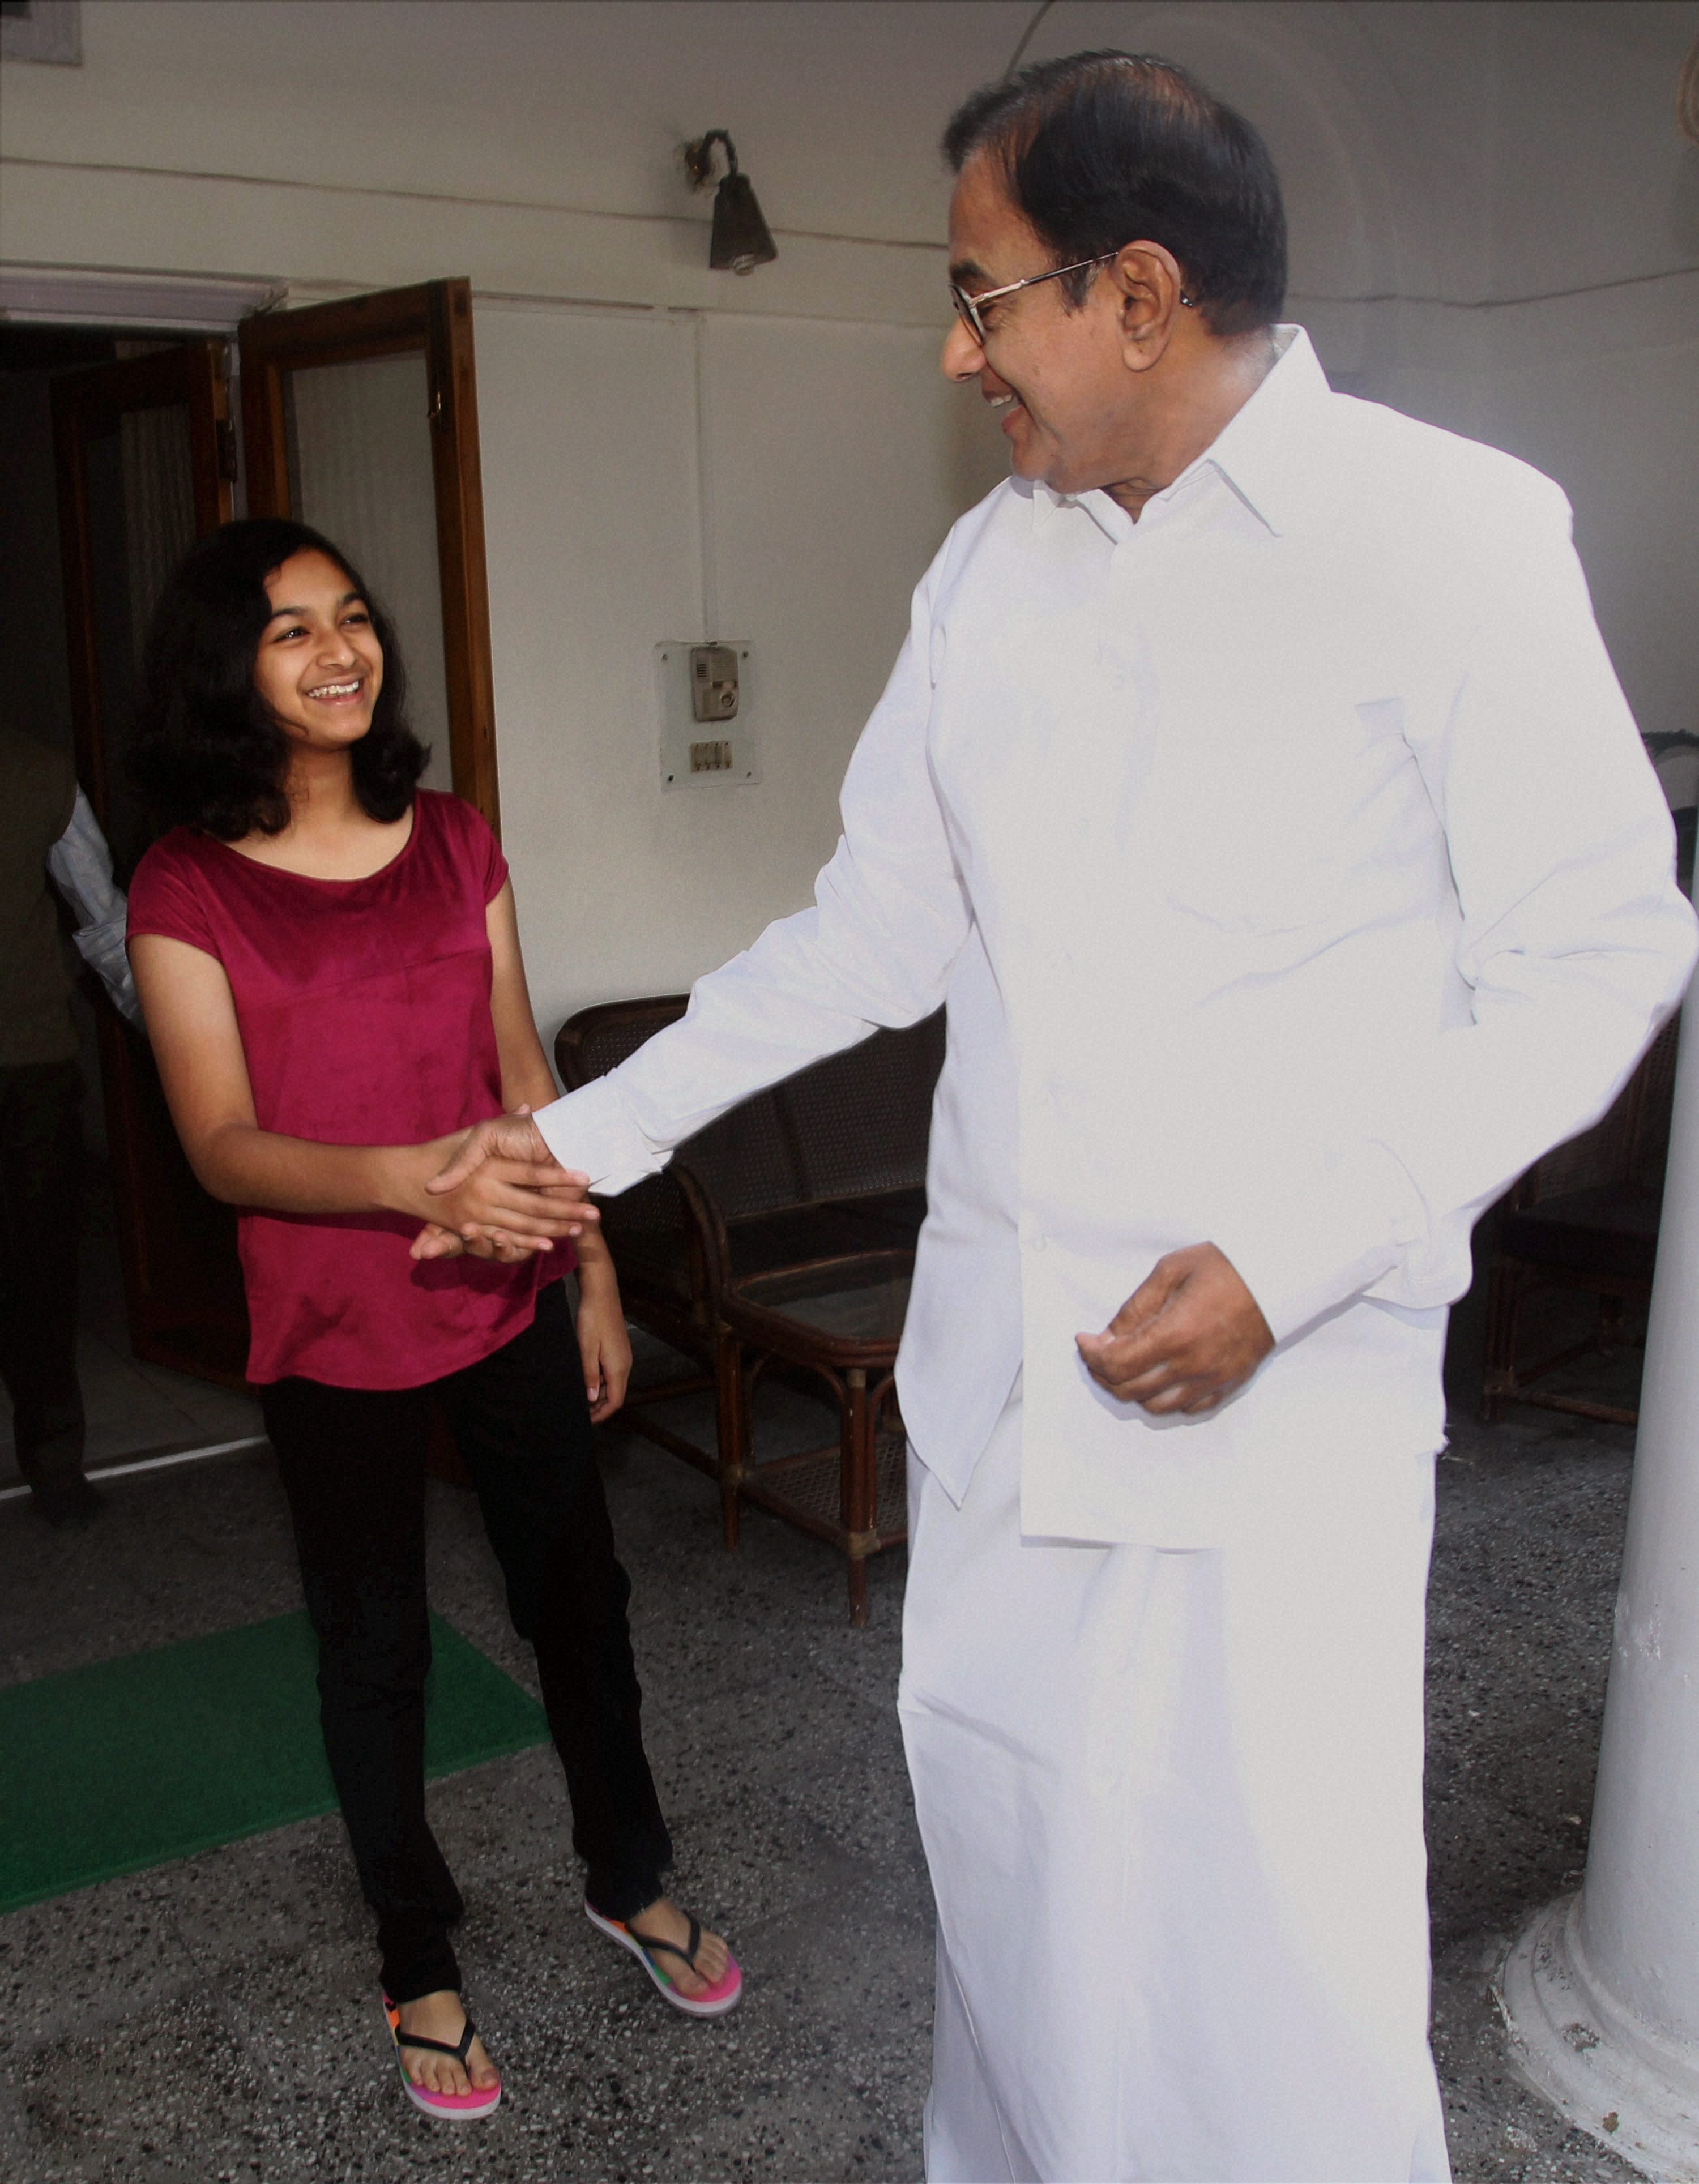 Chidambaram gets ready to head out.